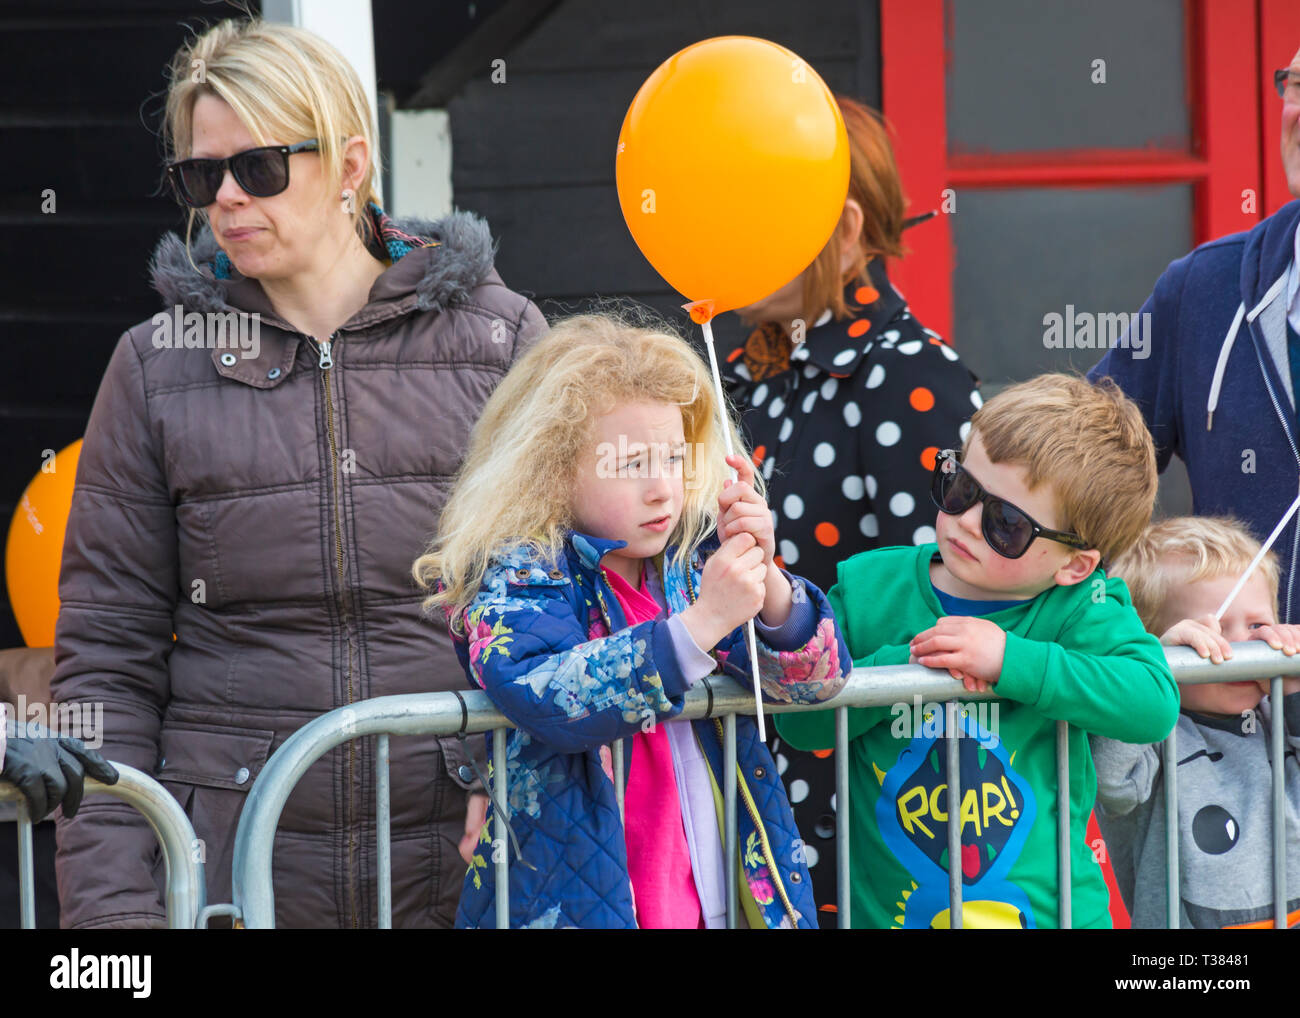 Bournemouth, Dorset, UK. 7th April 2019. Spectators provide support at Bournemouth Bay Run along Bournemouth's sea front. Participants run to raise vital funds for the British Heart Foundation charity to fight against heart disease. A dry day with hazy sunshine. Credit: Carolyn Jenkins/Alamy Live News - Stock Image